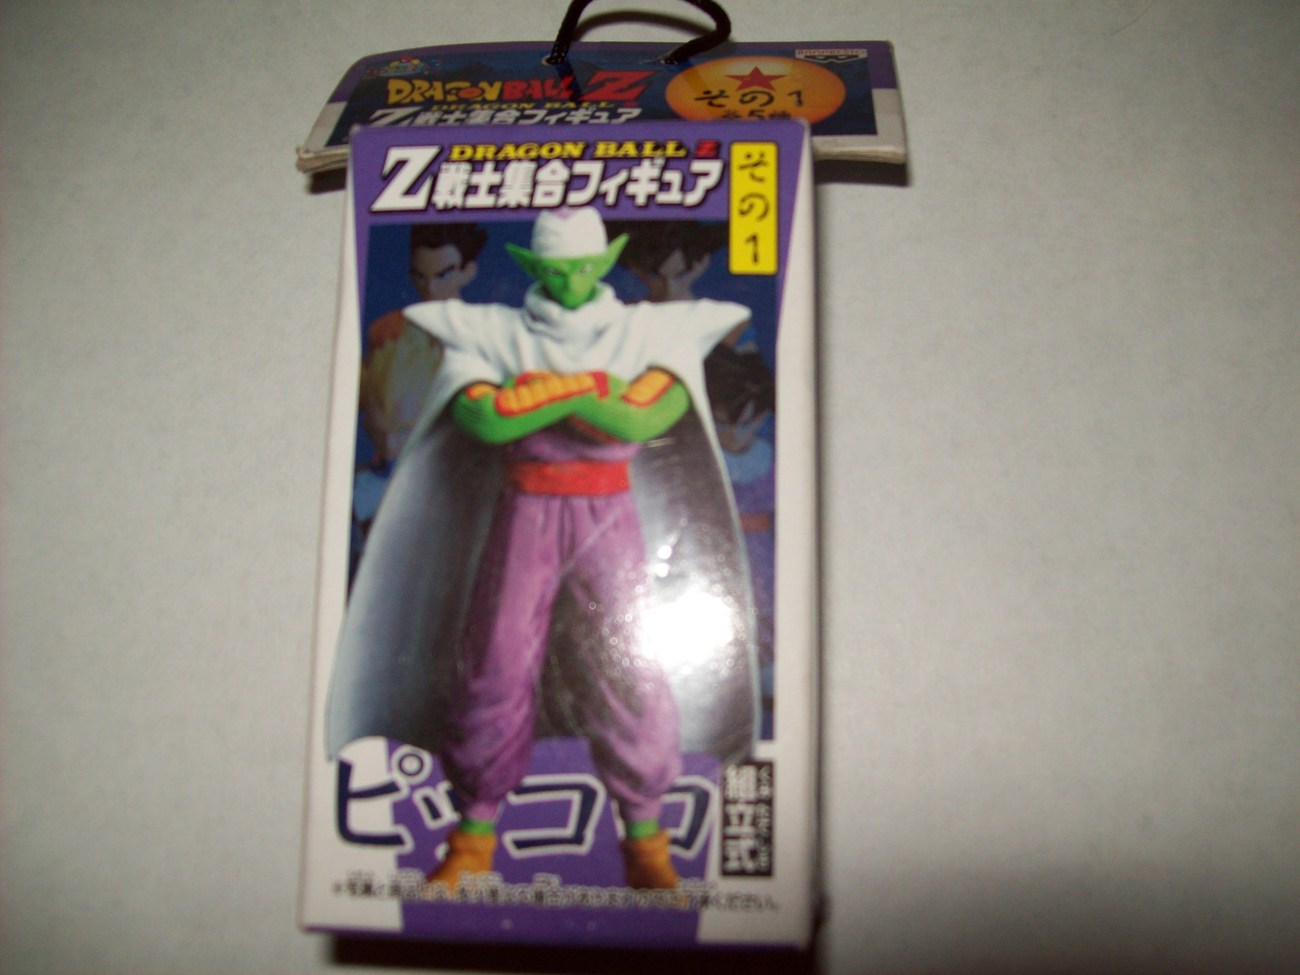 piccolo dragonball z banpresto figure prize in japan only nib toy open to offers